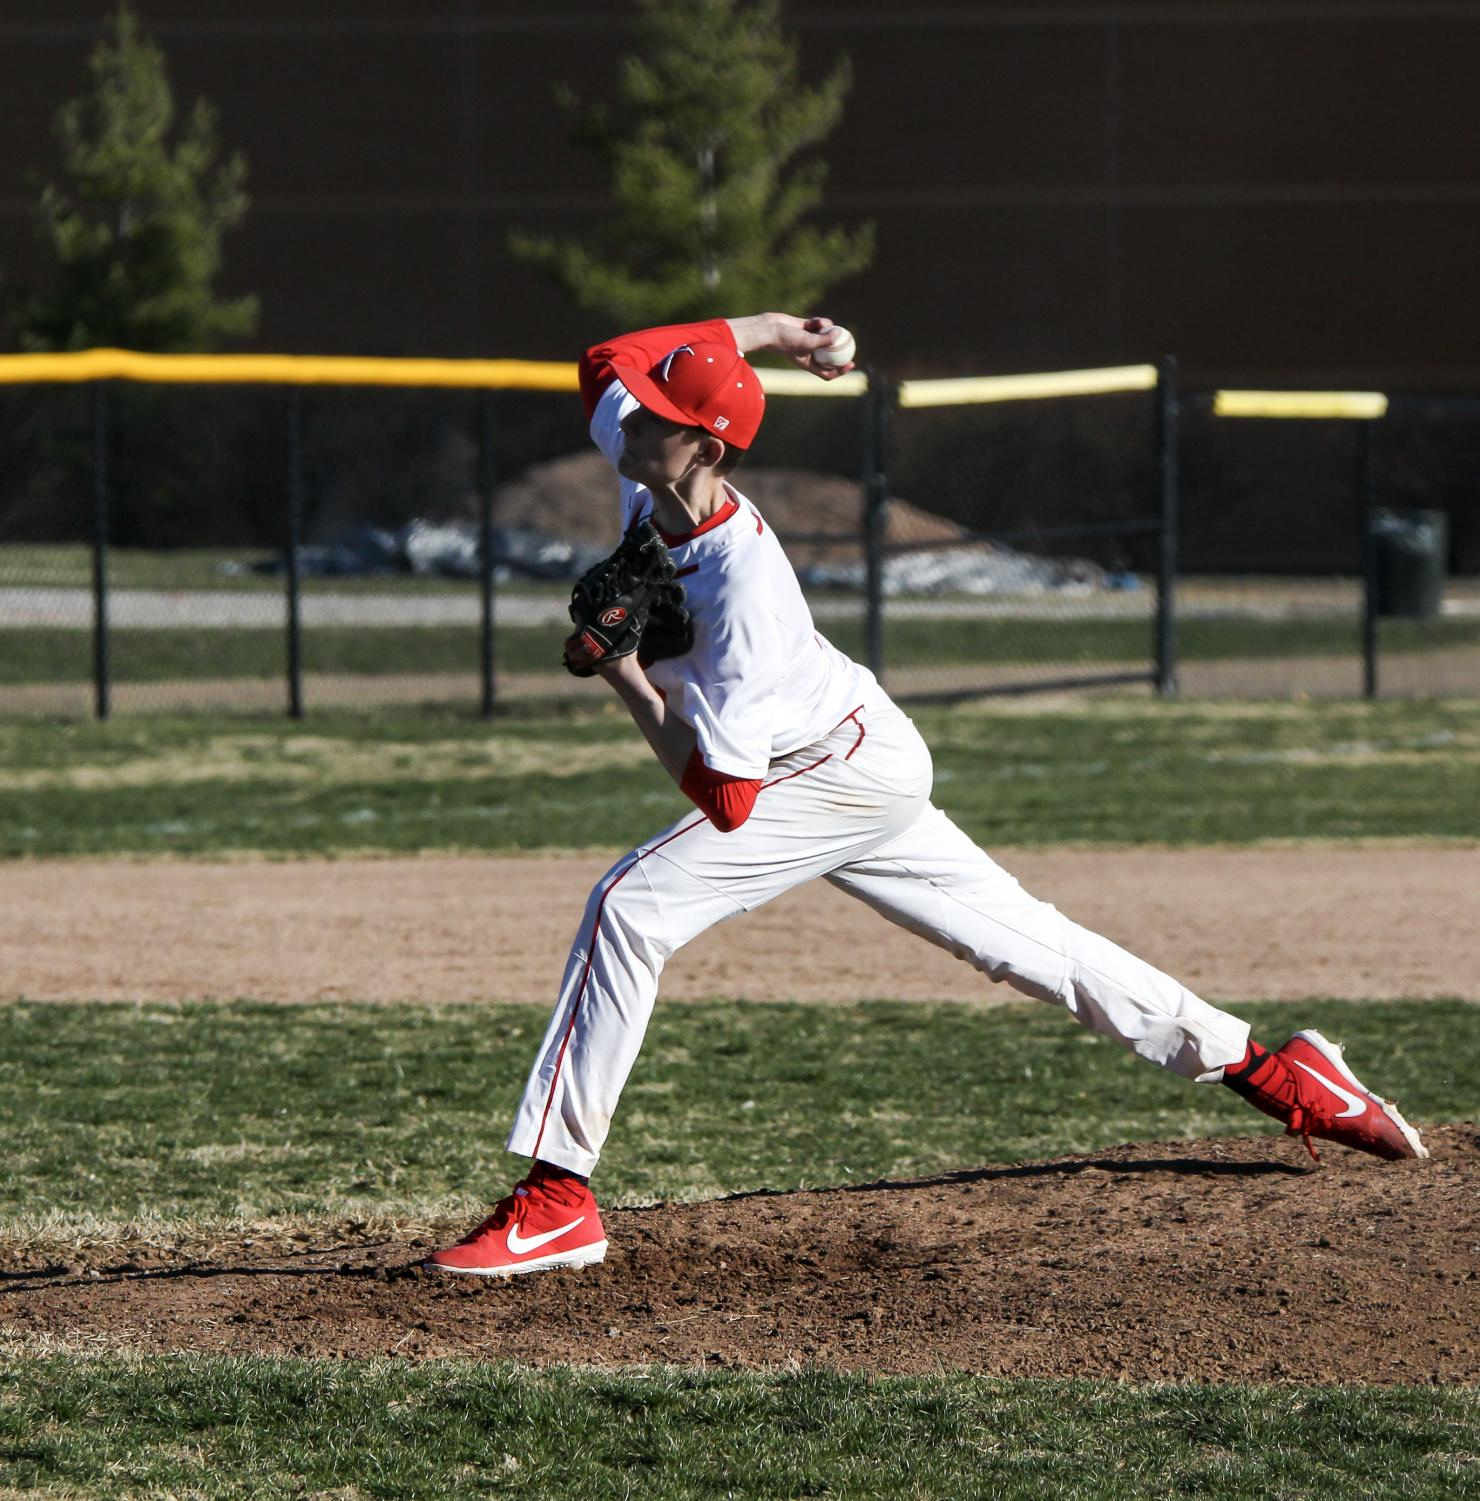 +Pitching+the+ball%2C+Kannon+Nesslage%2C+sophomore%2C+throws+a+4-seam+fastball+during+a+game+against+Ritneour+High+School+Mar.+22.%0A